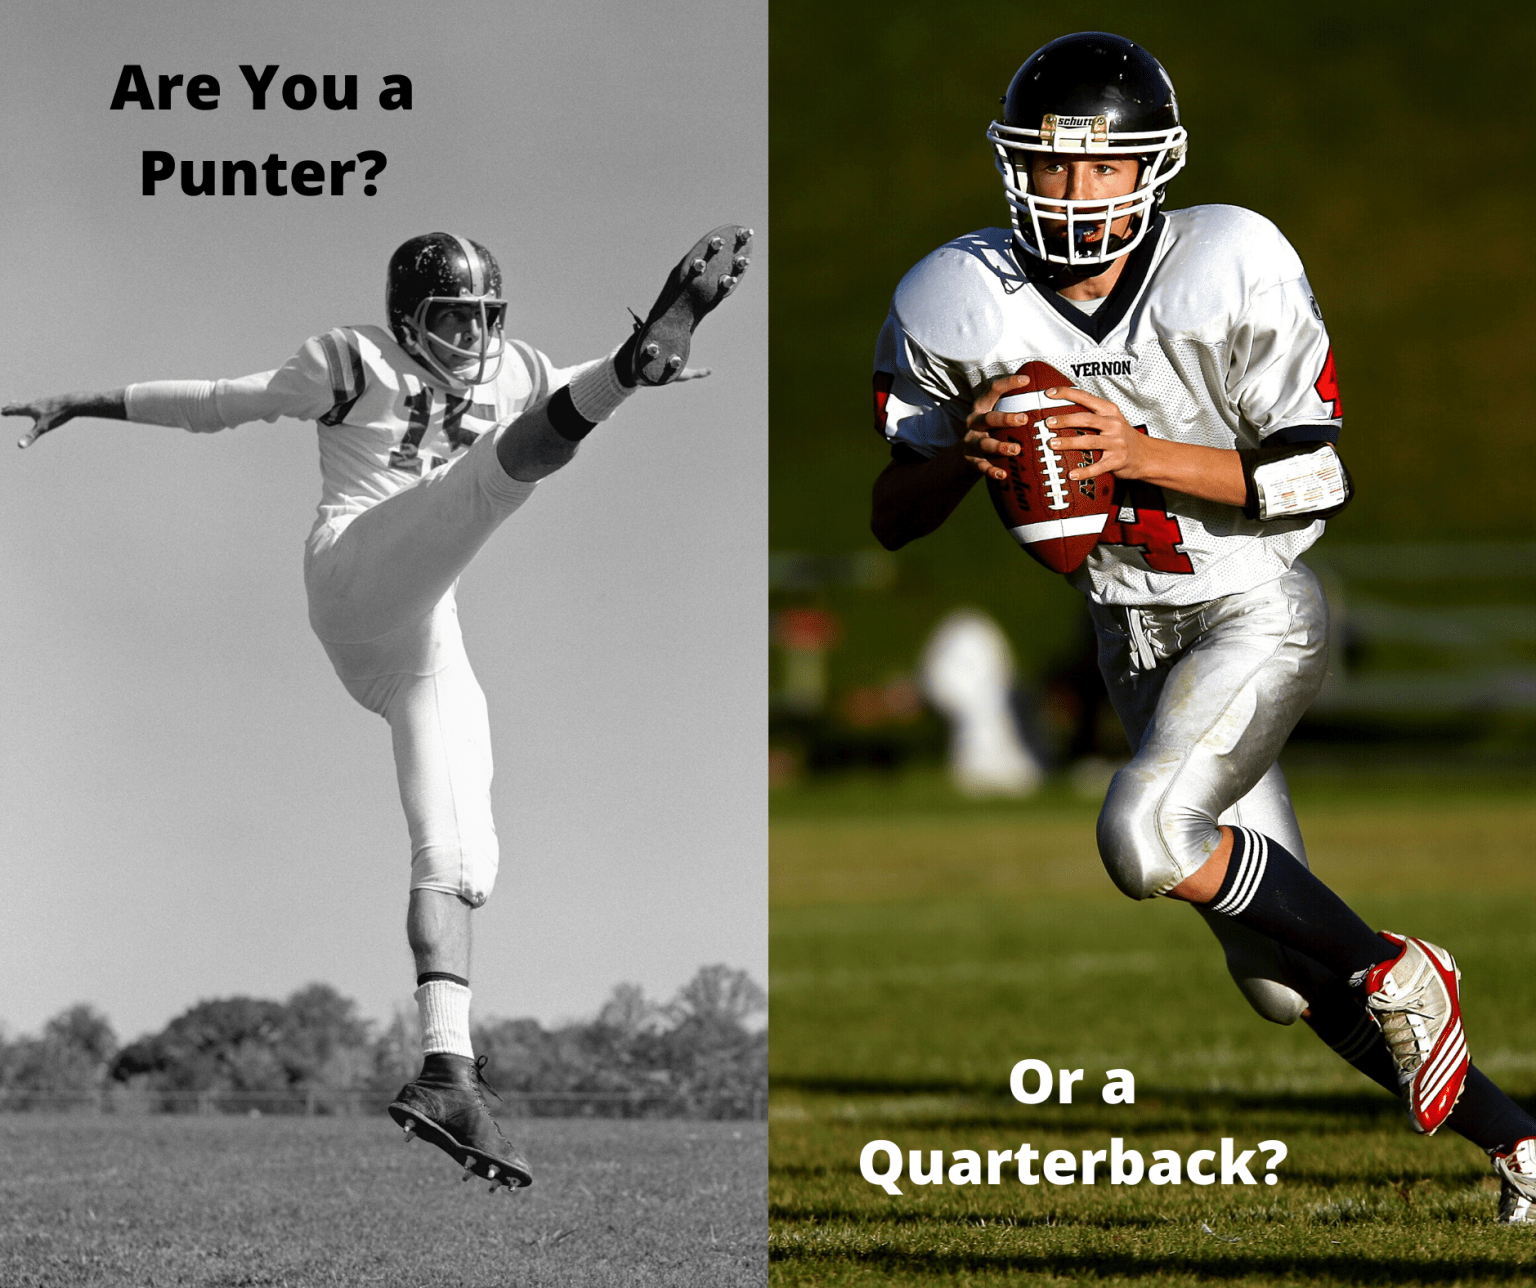 Leaders–Are You The Quarterback or the Punter?